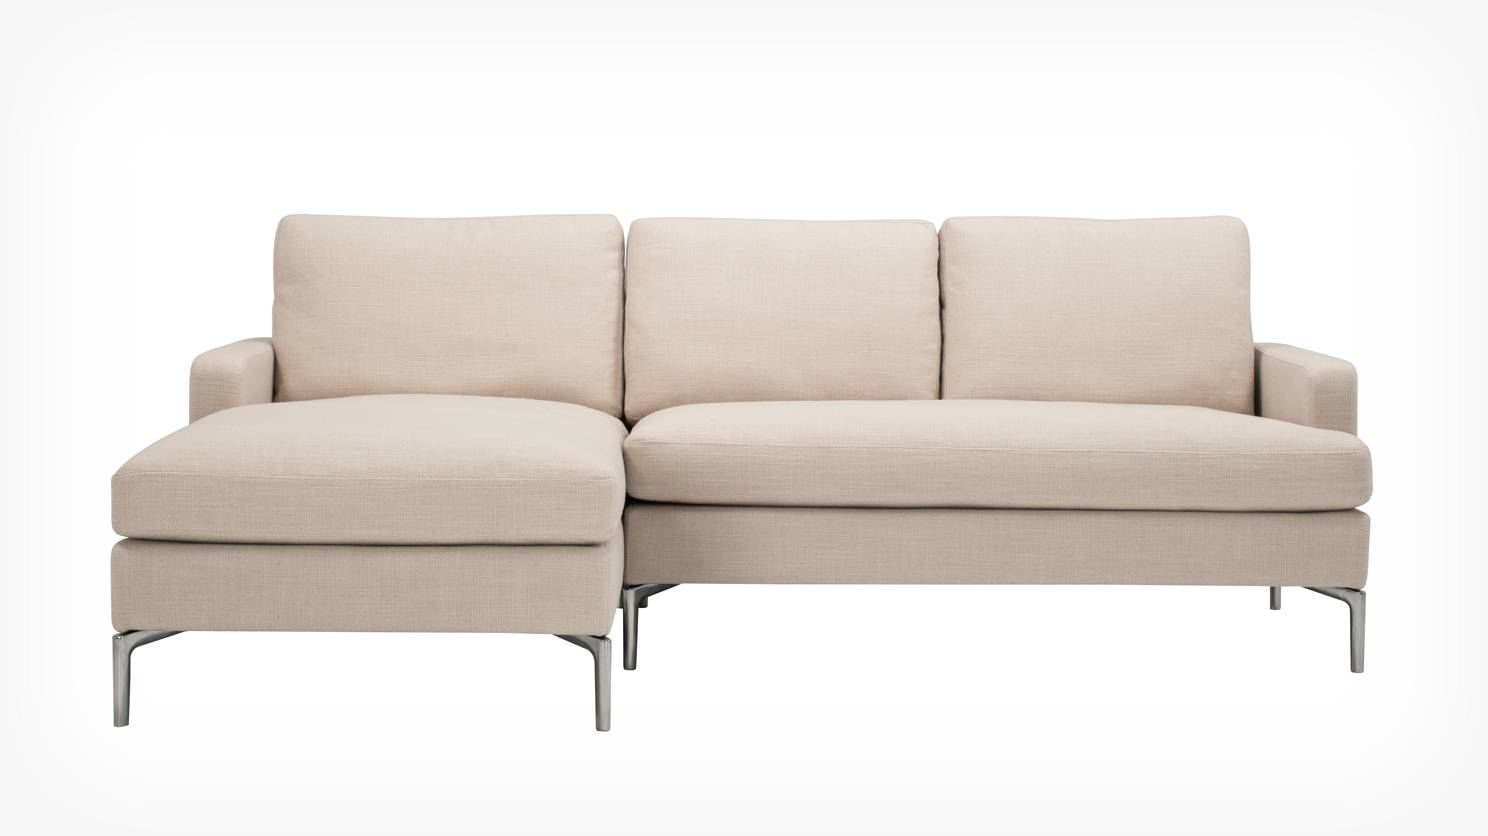 Eq3 | Eve 2-Piece Sectional Sofa With Chaise - Fabric pertaining to Small 2 Piece Sectional Sofas (Image 12 of 30)